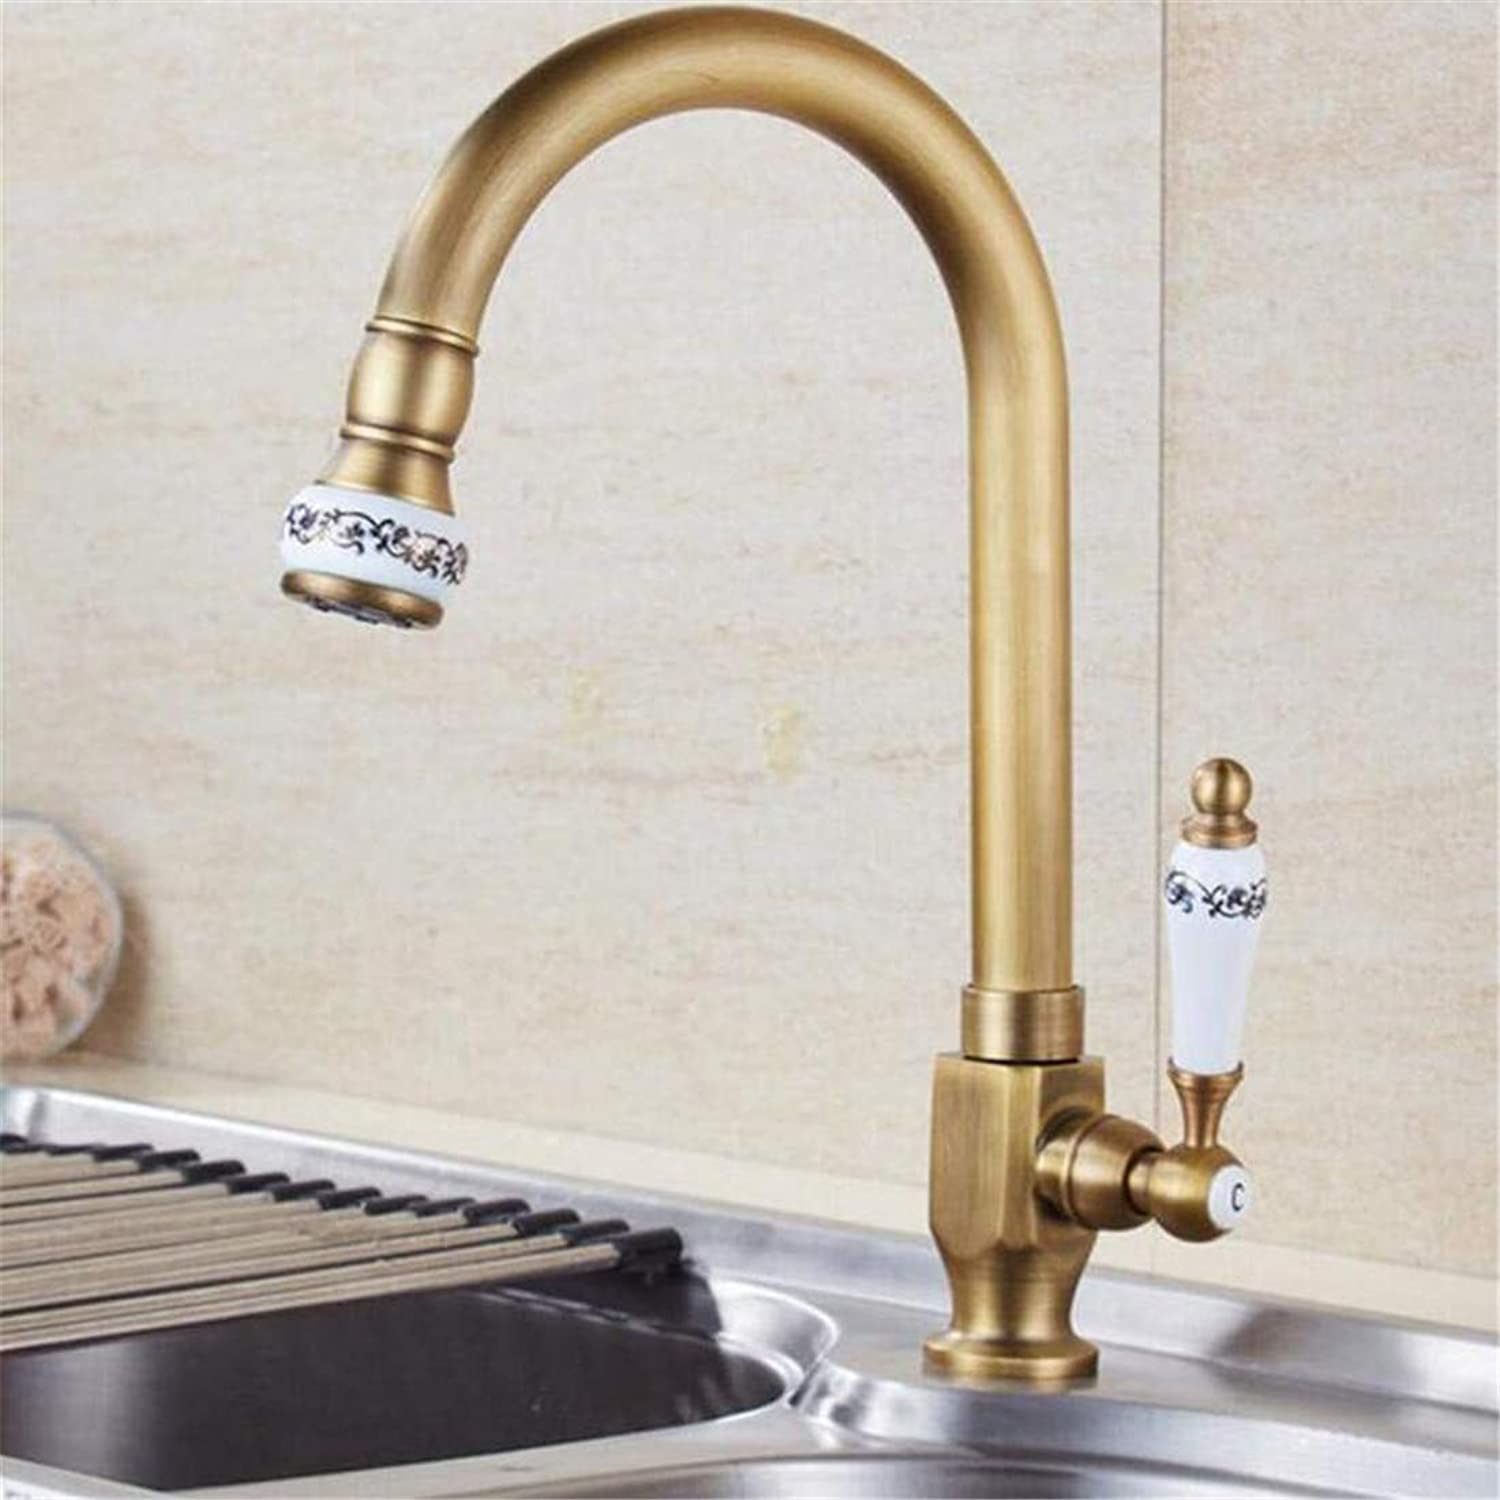 Faucet Retro Kitchen Bathroom Faucet Faucet Washbasin Brass Ceramic Kitchen Faucet Single Cold Water Faucet Deck Mounted Swivel Sink Tap